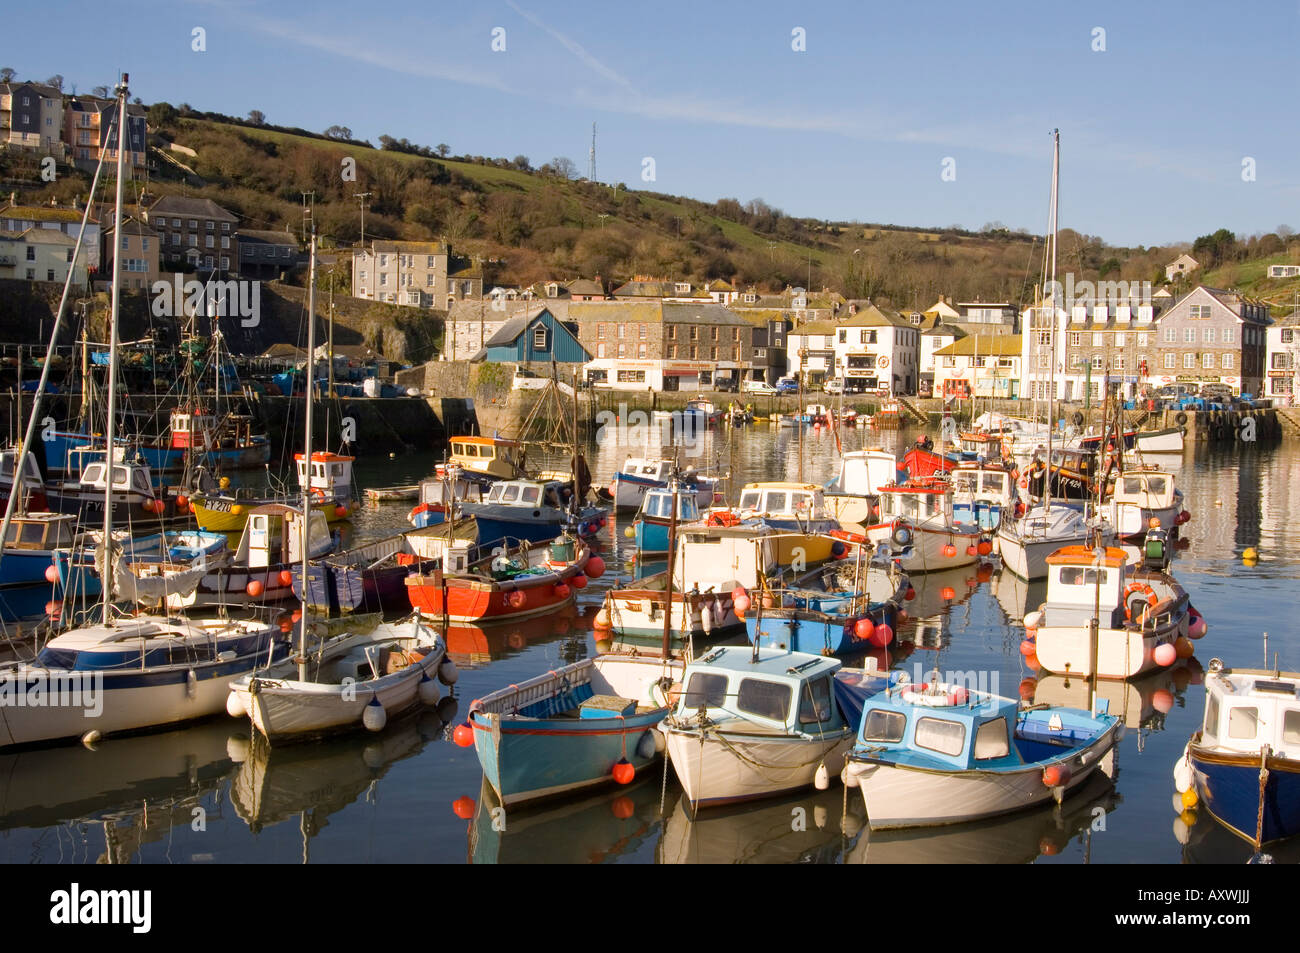 Colourful old wooden fishing boats in the harbour, Mevagissey, Cornwall, England, United Kingdom, Europe Stock Photo